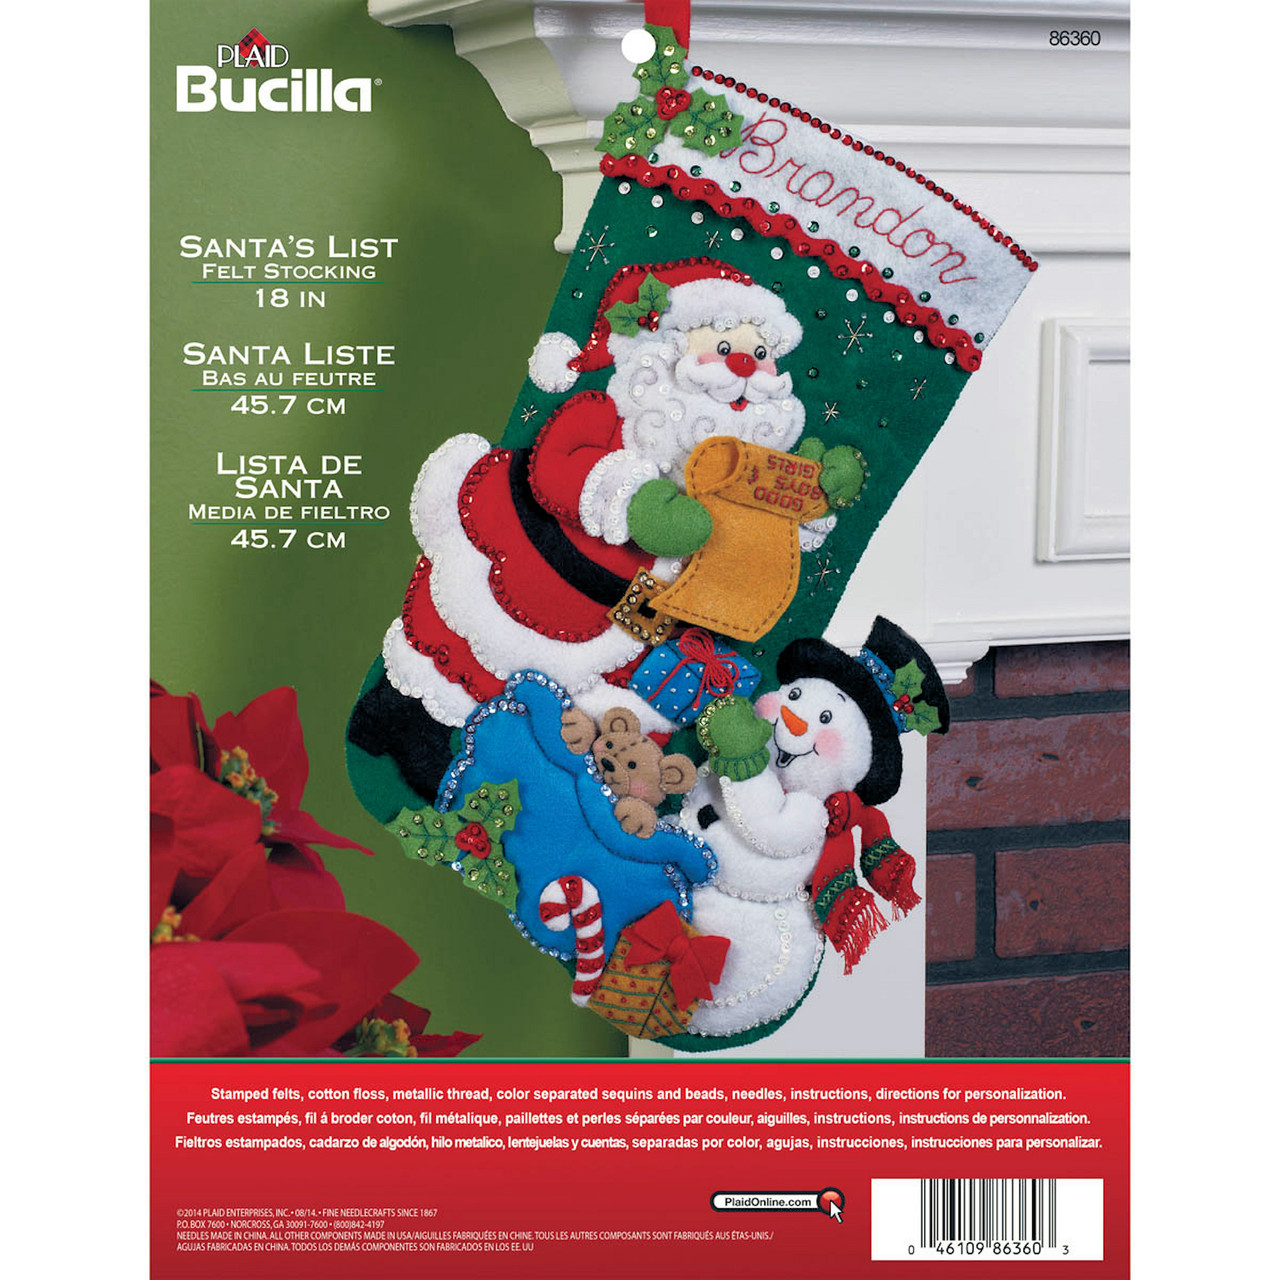 Plaid / Bucilla - Santa's List Stocking